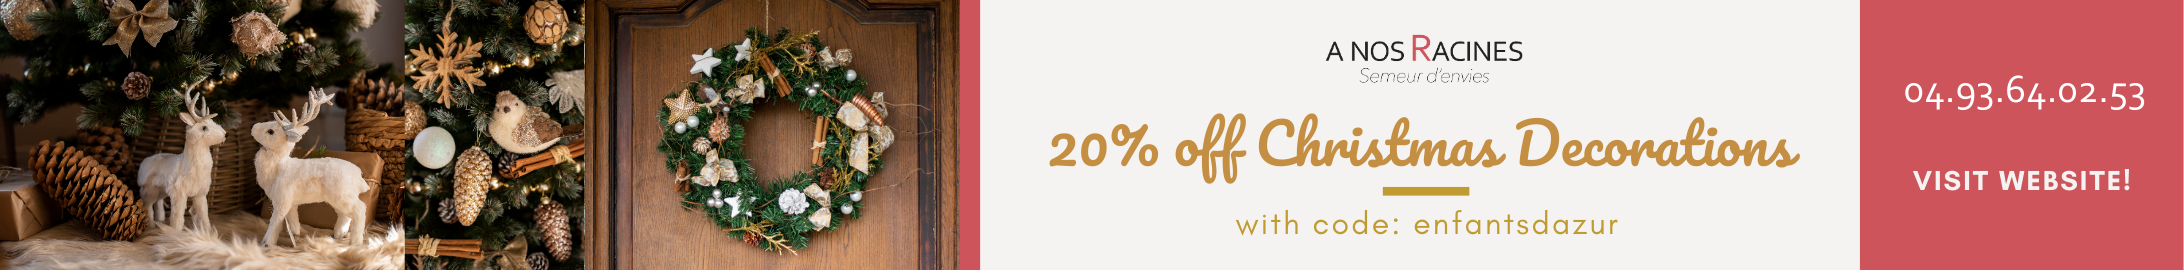 20% off Christmas Decorations